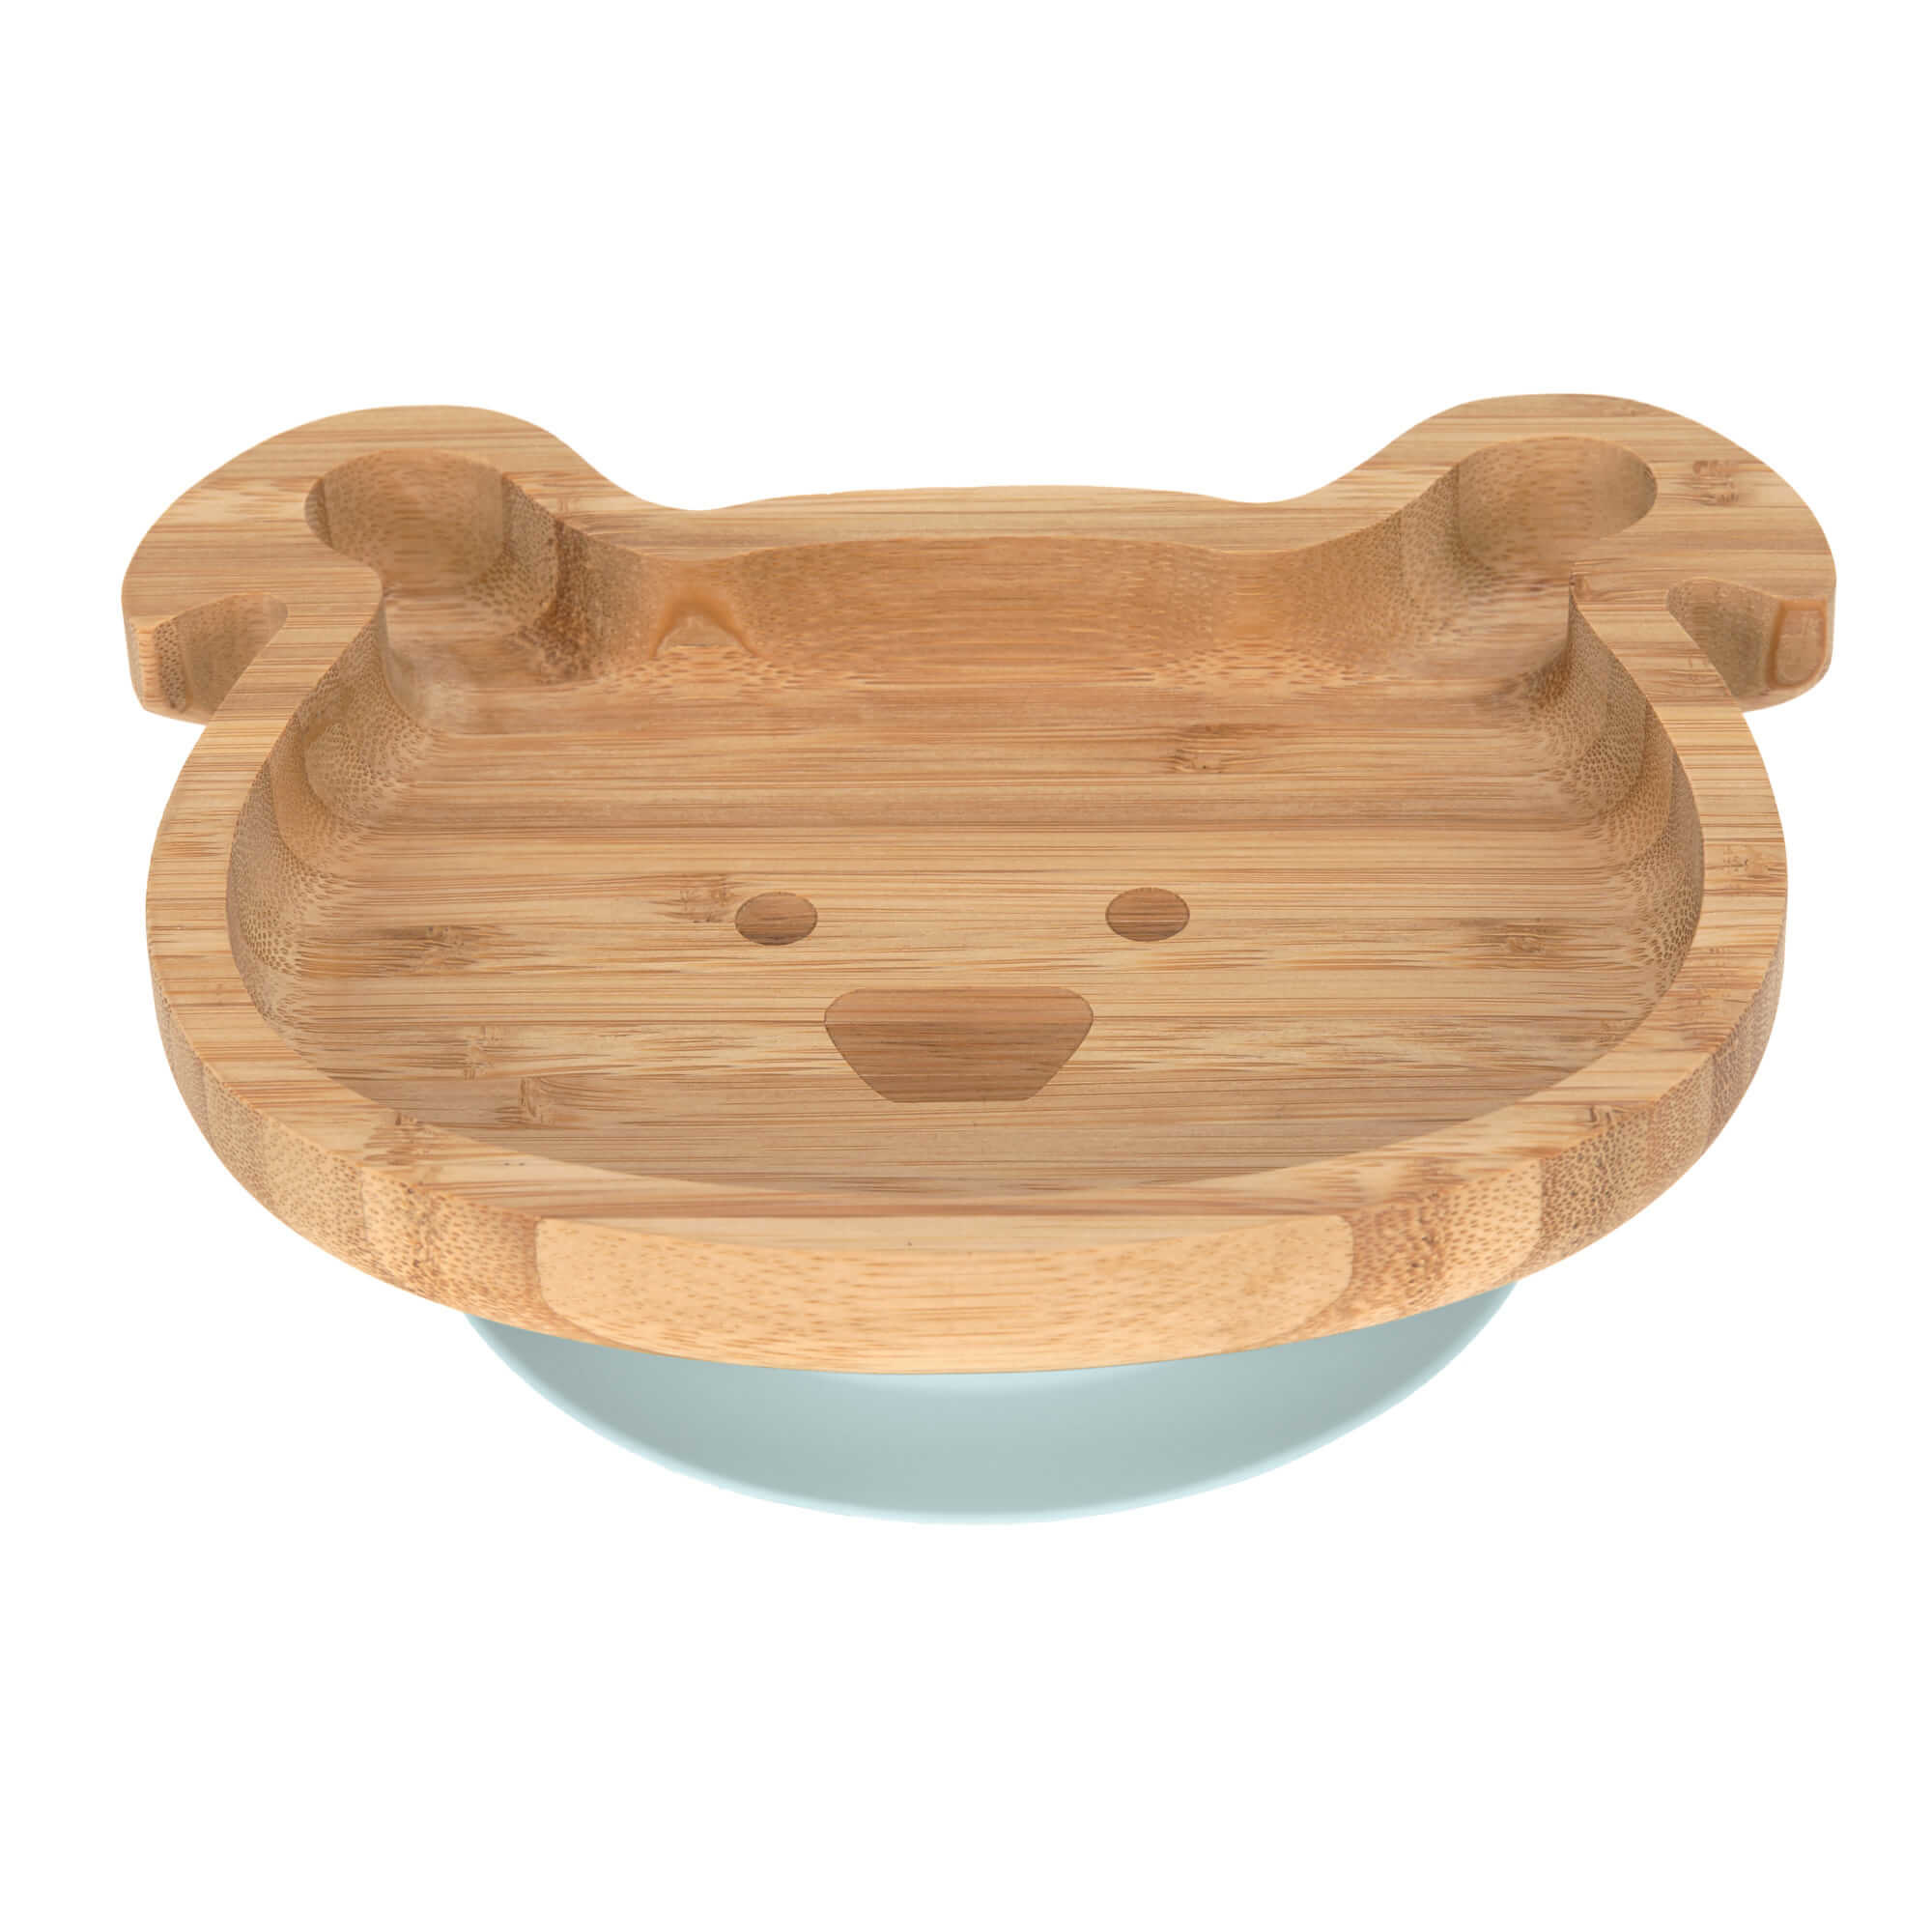 BAMB Lässig 4Babies & Kids Bord bamboo/hout met zuignap silicone little chums dog